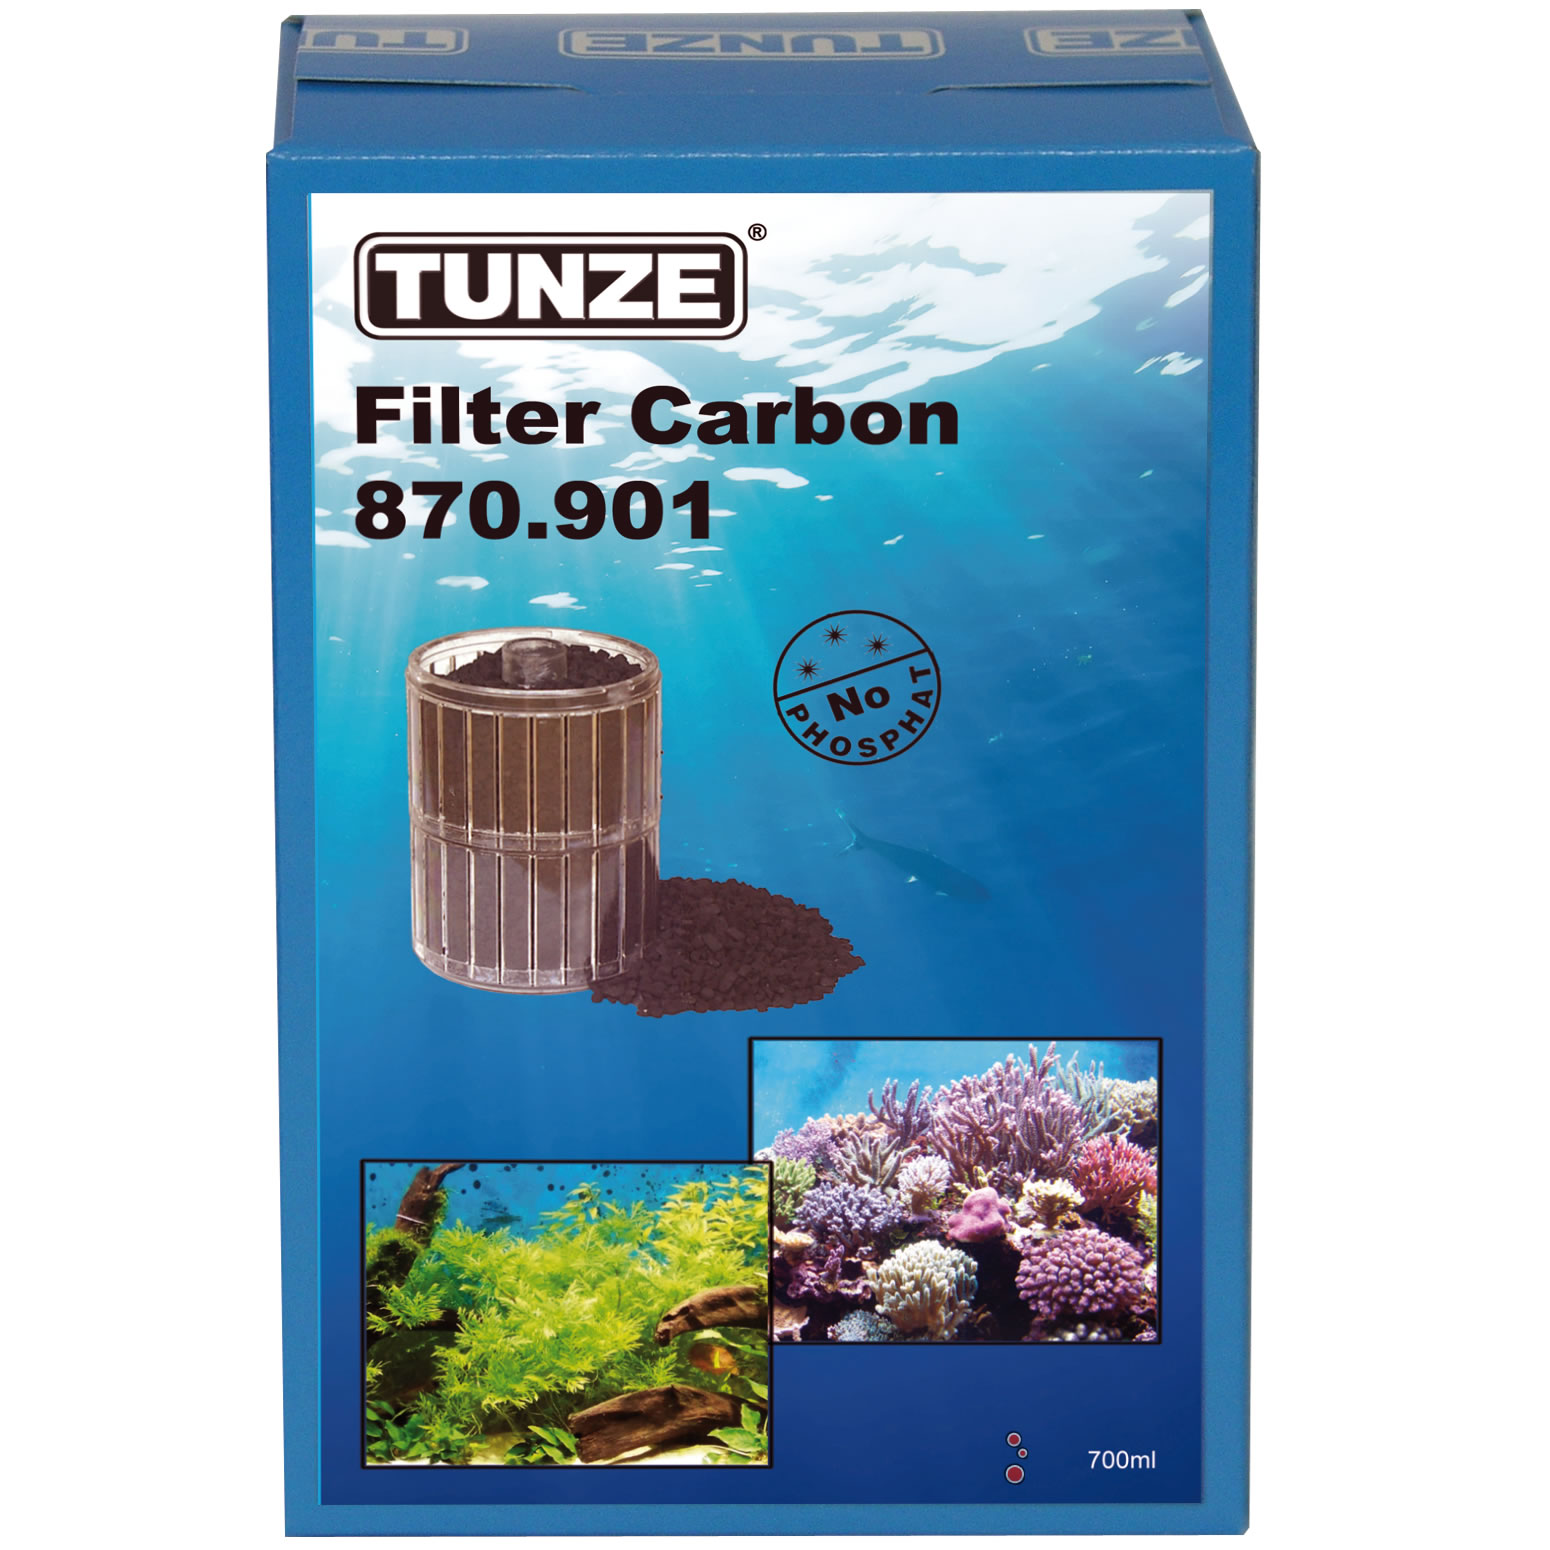 TUNZE special filter carbon